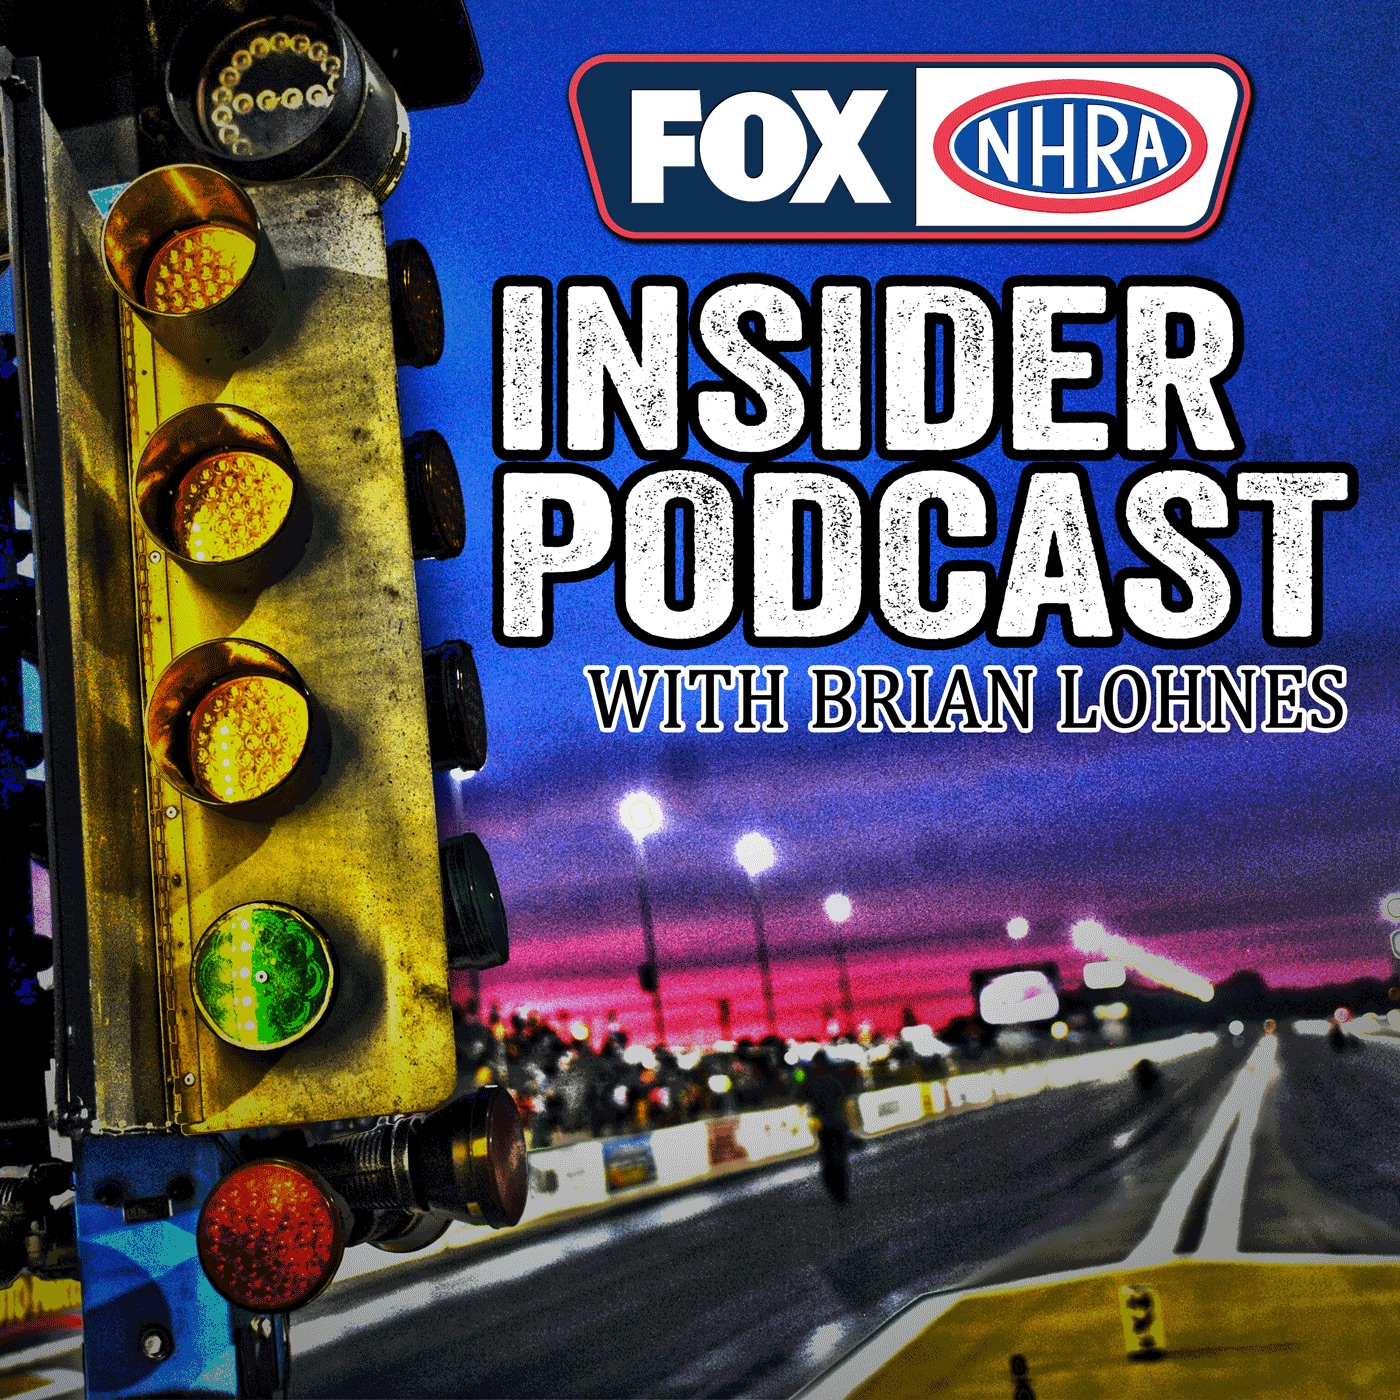 NHRA Insider Podcast: Planning For The Unplannable – How The NHRA Developed The Processes and Procedures For Fan and Racer Safety